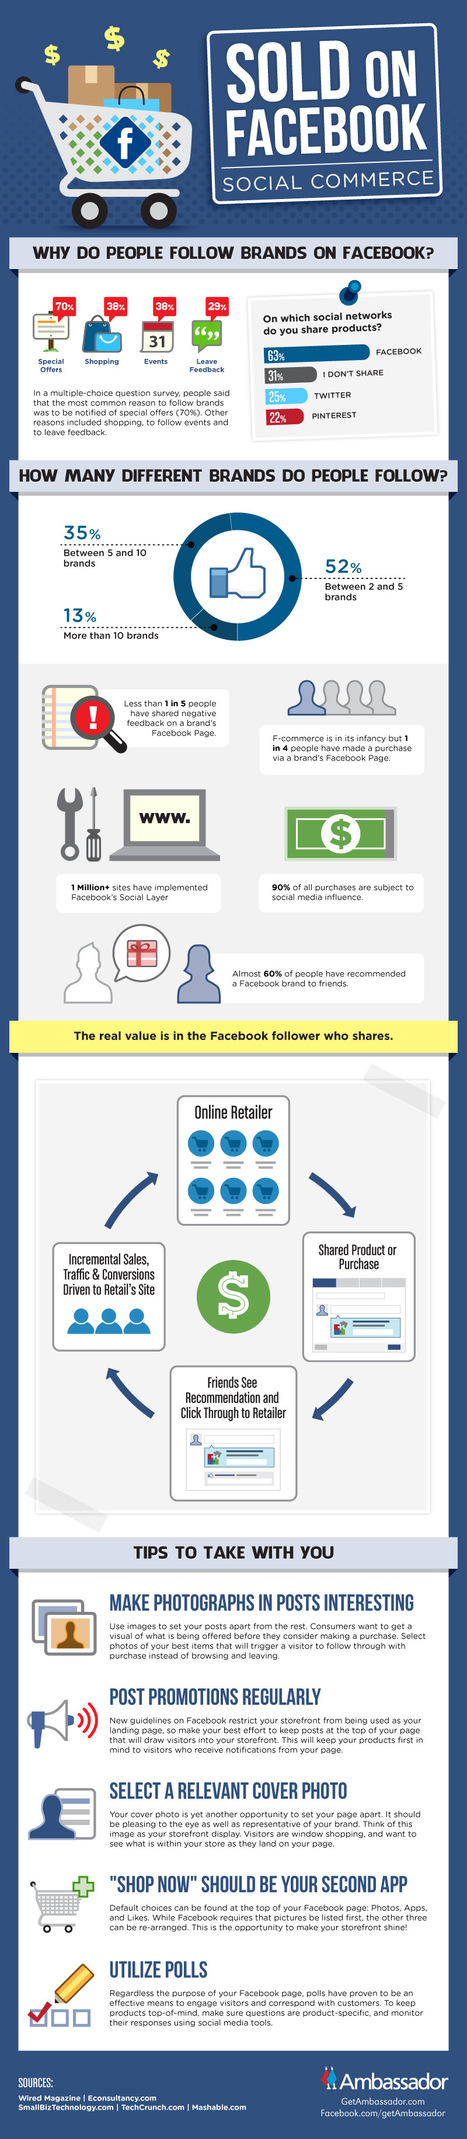 INFOGRAPHIC: What Makes People Sold On Brands On Facebook? | Social Media Butterflies | Scoop.it